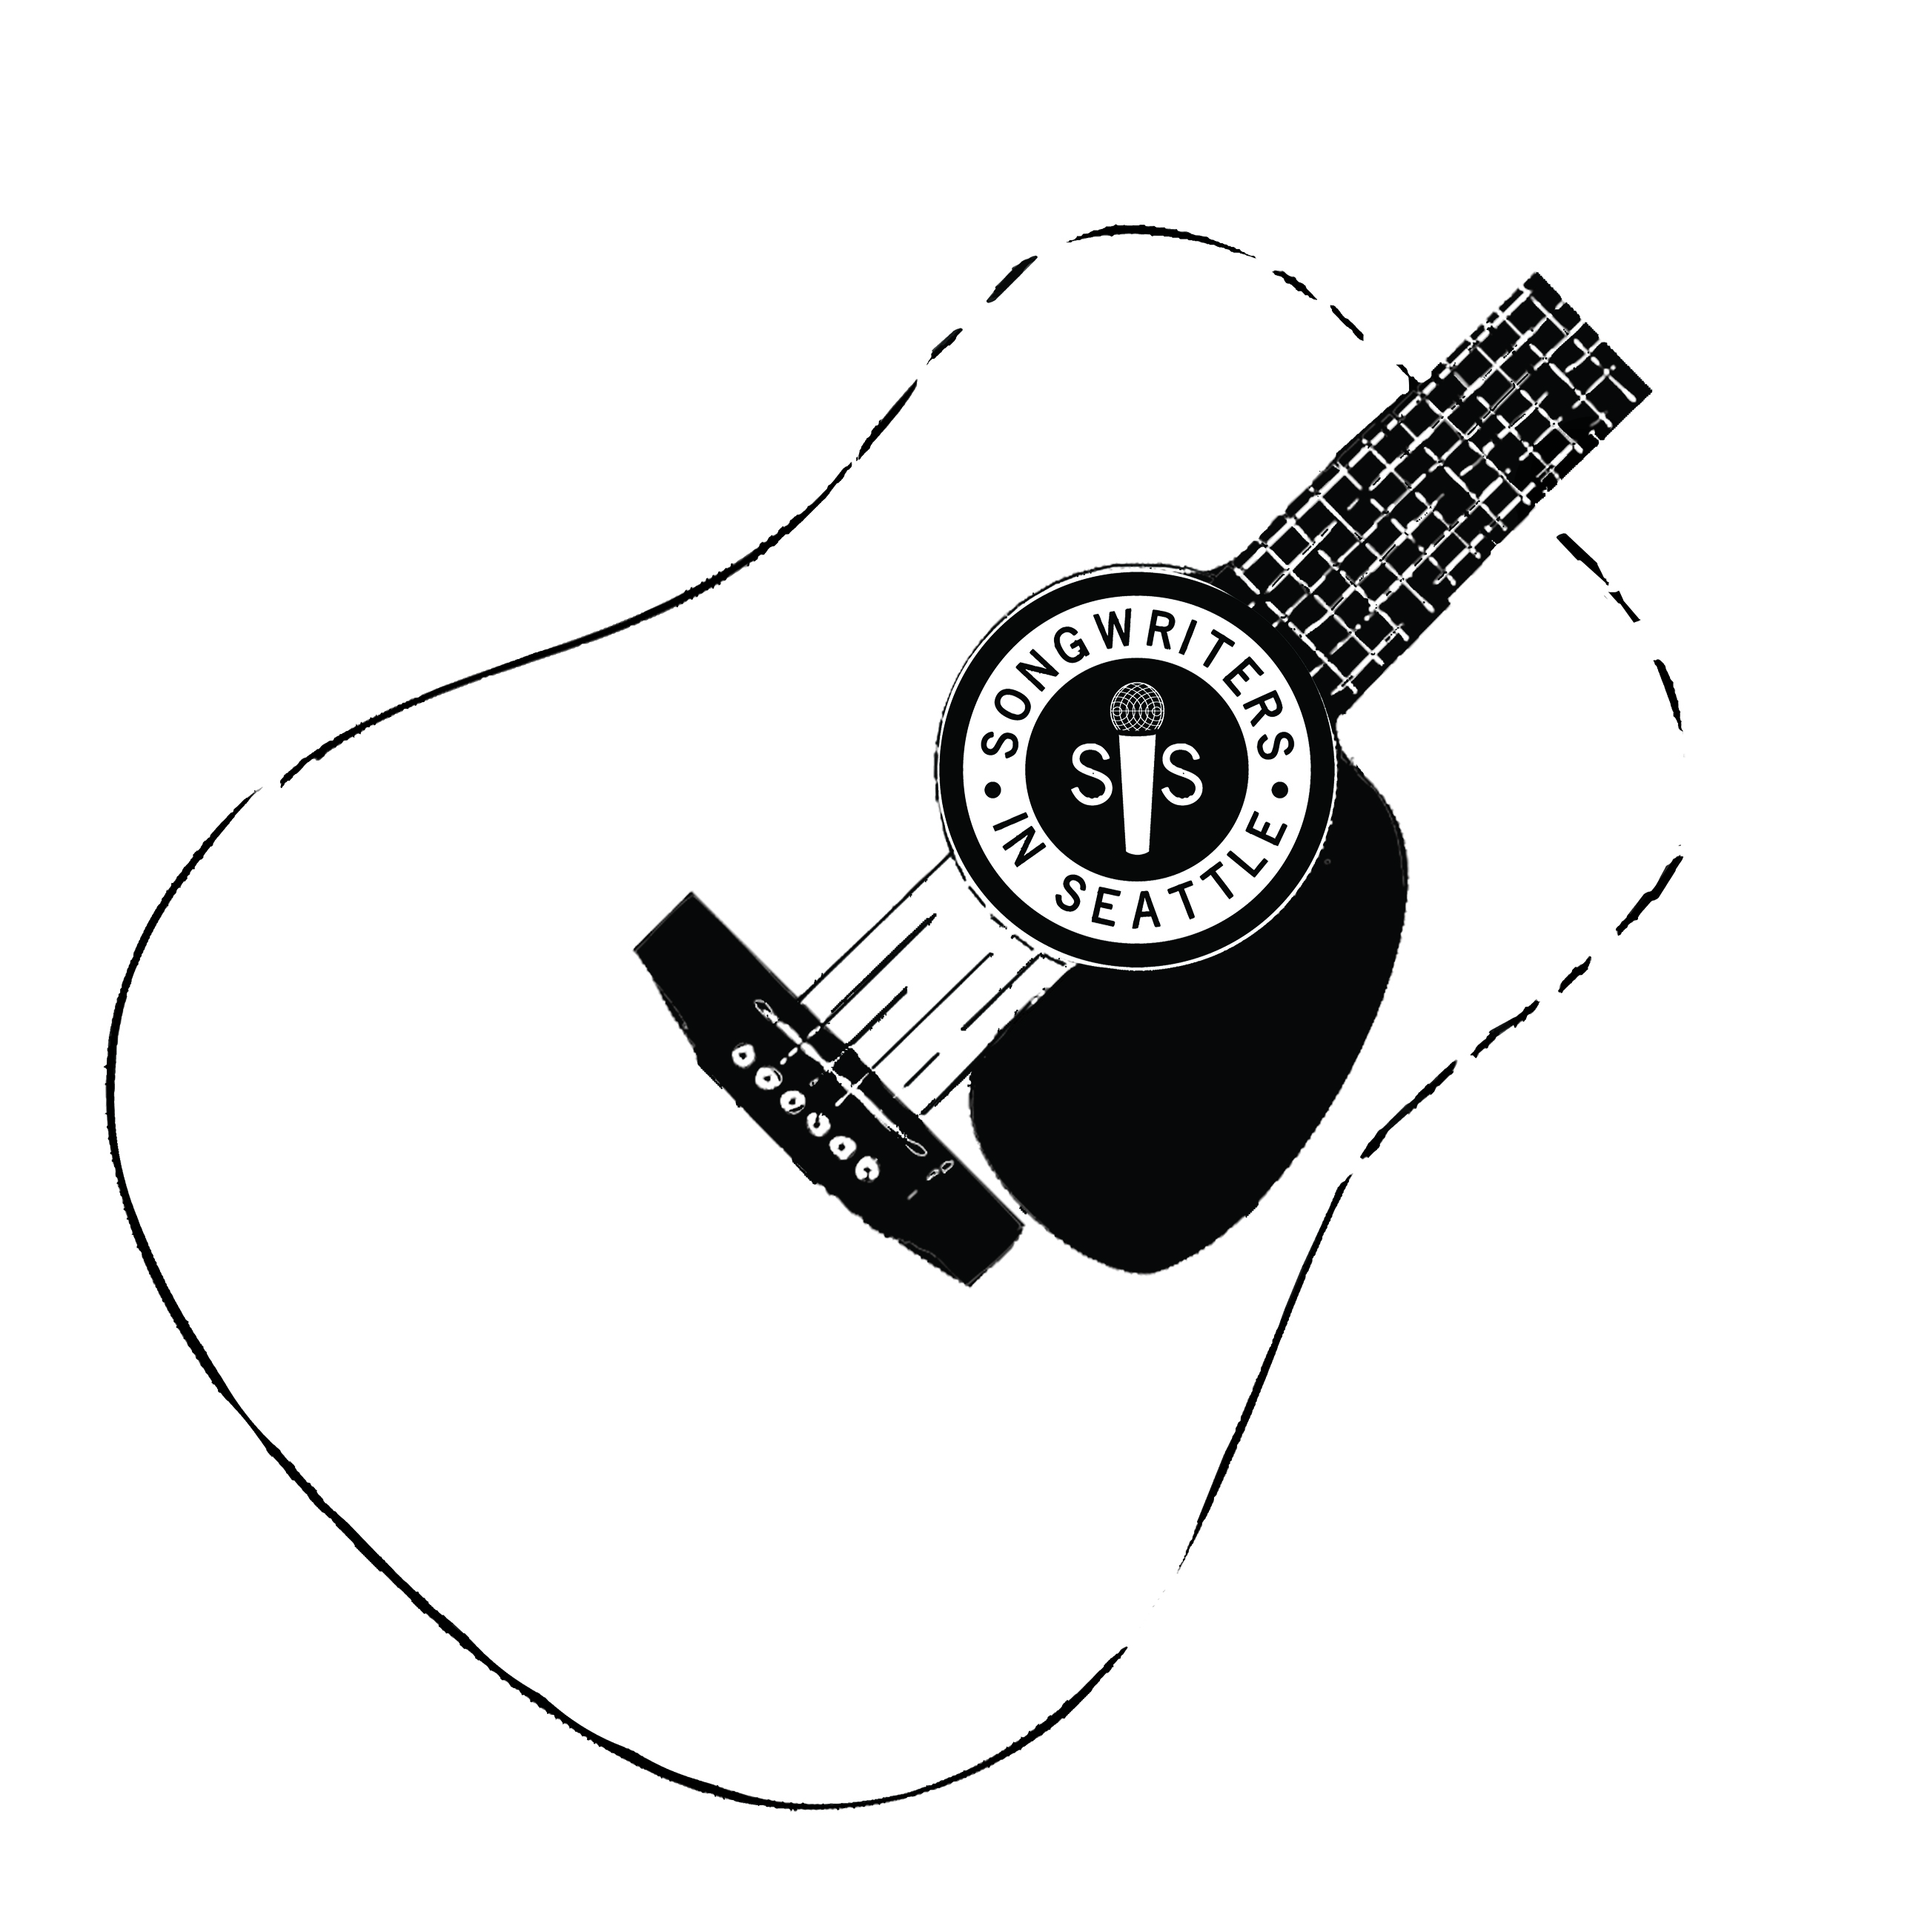 Not a member yet?Register now and get started.SiS Merchandise on CafePress!Connect With Us!SponsorsSiS Twitter Feed@sis_songwritersLike SiS on FacebookSubscribe to our podcast on iTunesContact Us